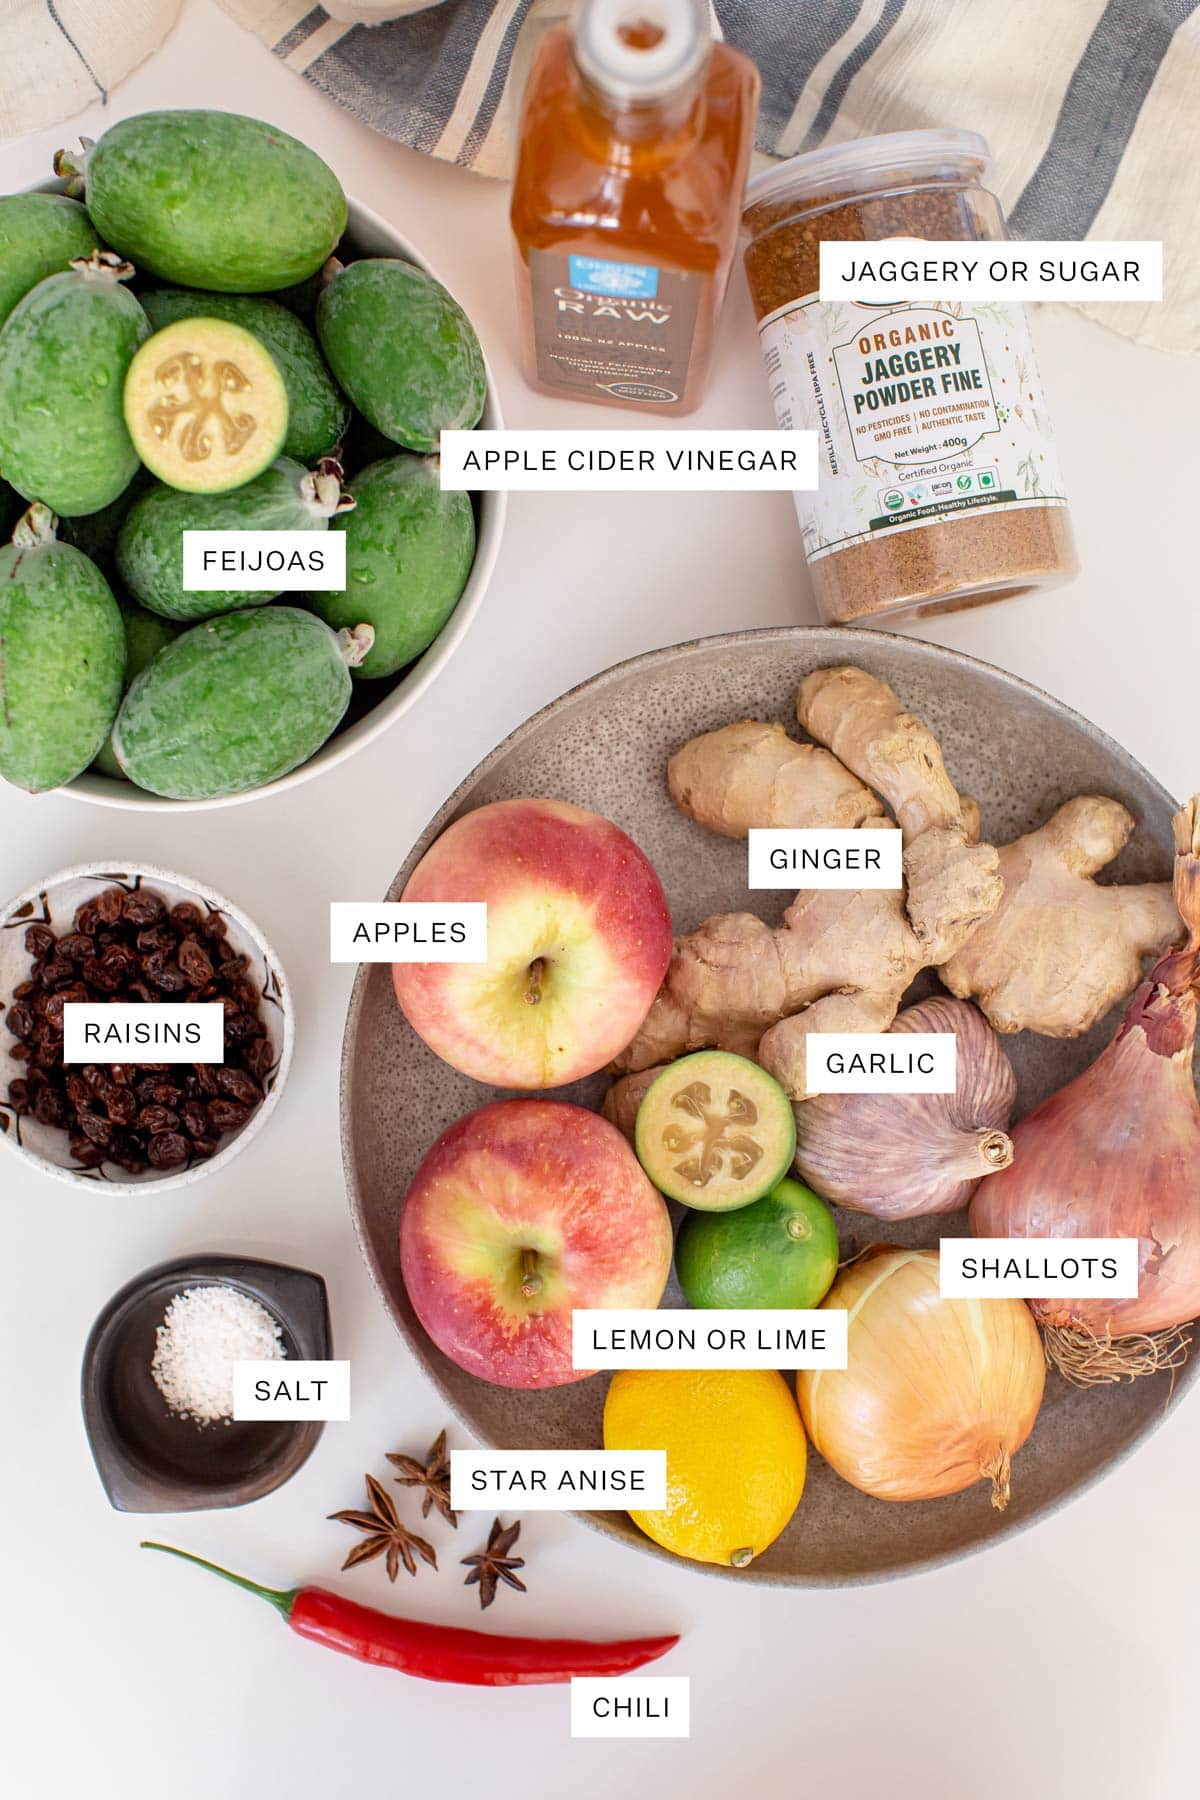 Flat lay of ingredients needed to make feijoa chutney - including feijoas, sugar, vinegar, apples, raisins and spices